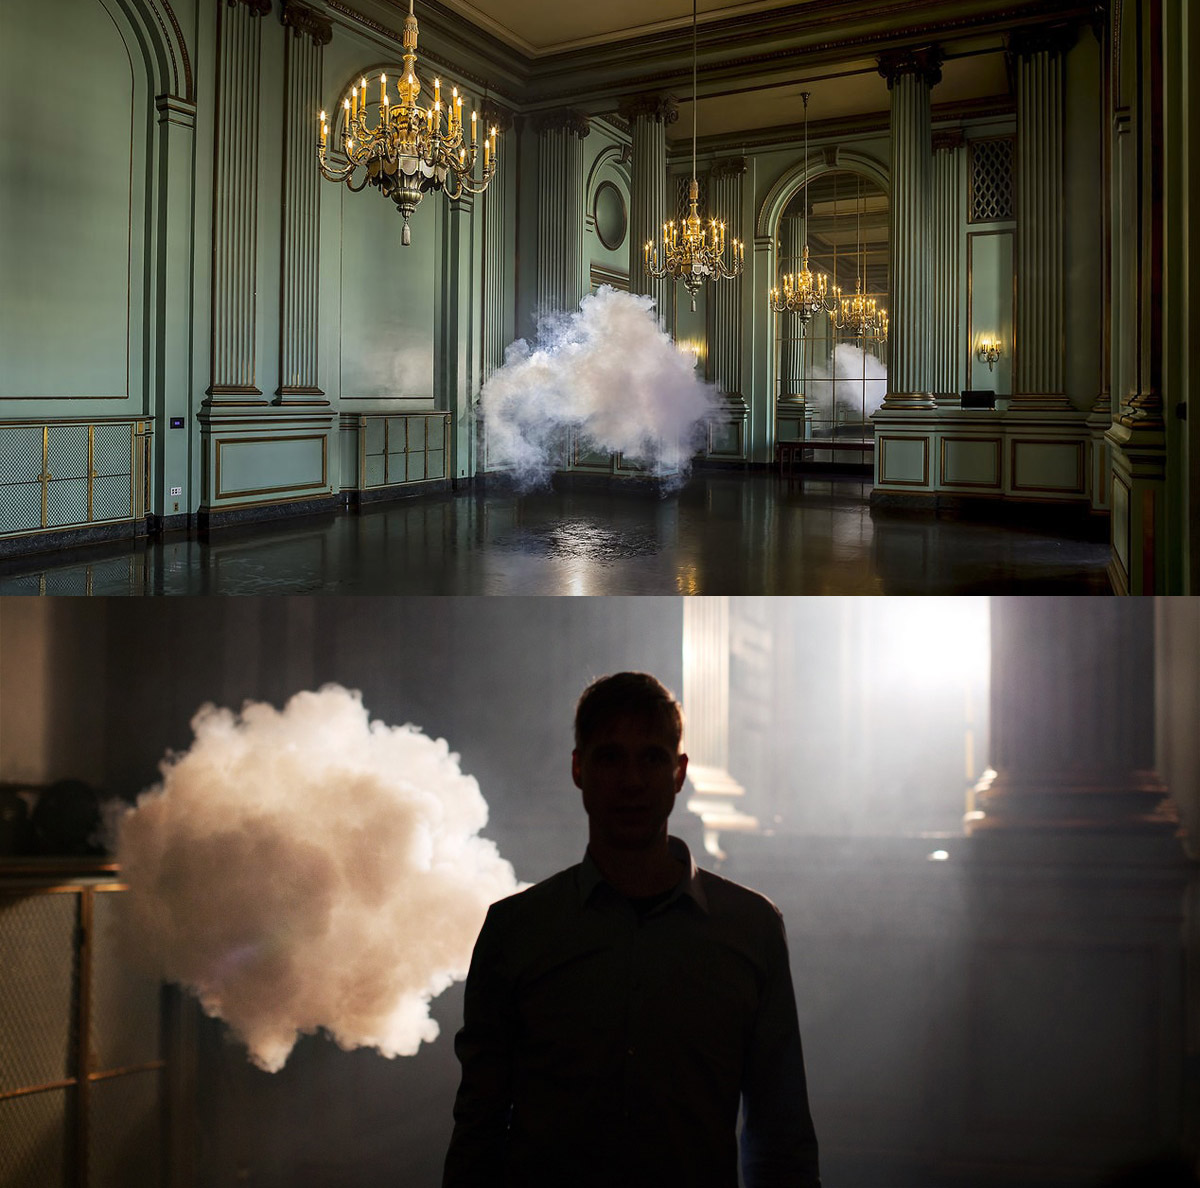 Cloud Installation Art by Berndnaut Smilde